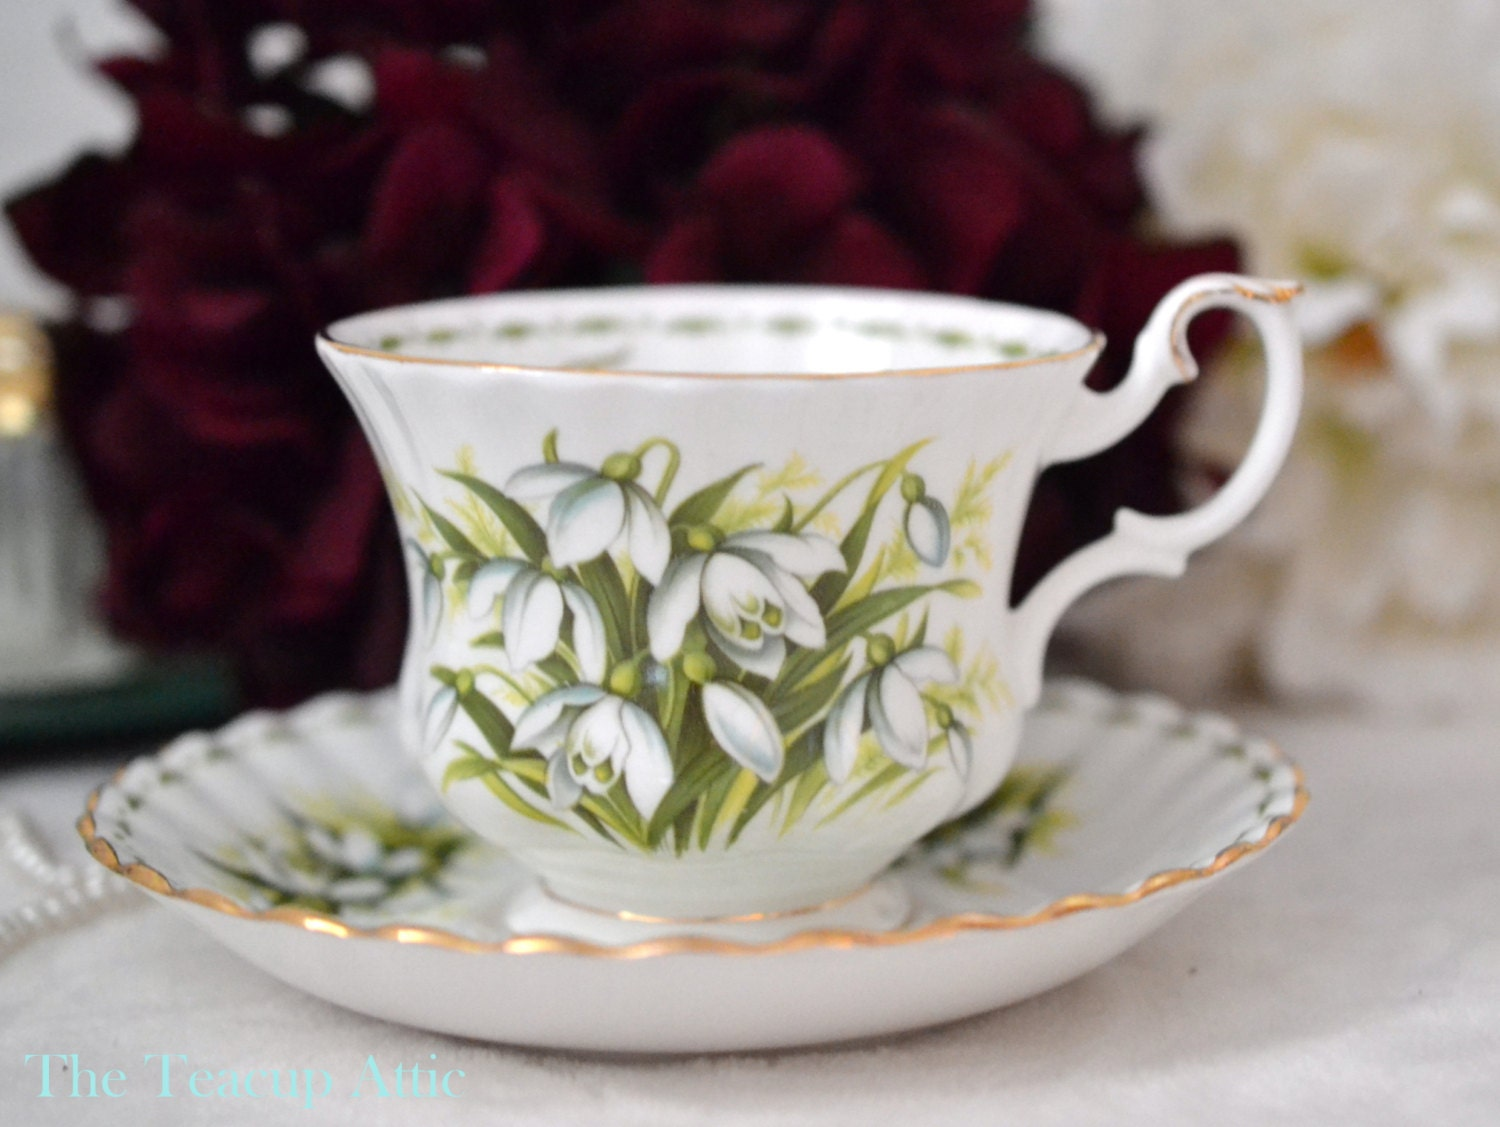 Royal Albert Teacup and Saucer Flower of the Month Series January Snowdrops, English Bone China Tea Cup Set, Birthday Gift, ca 1970-